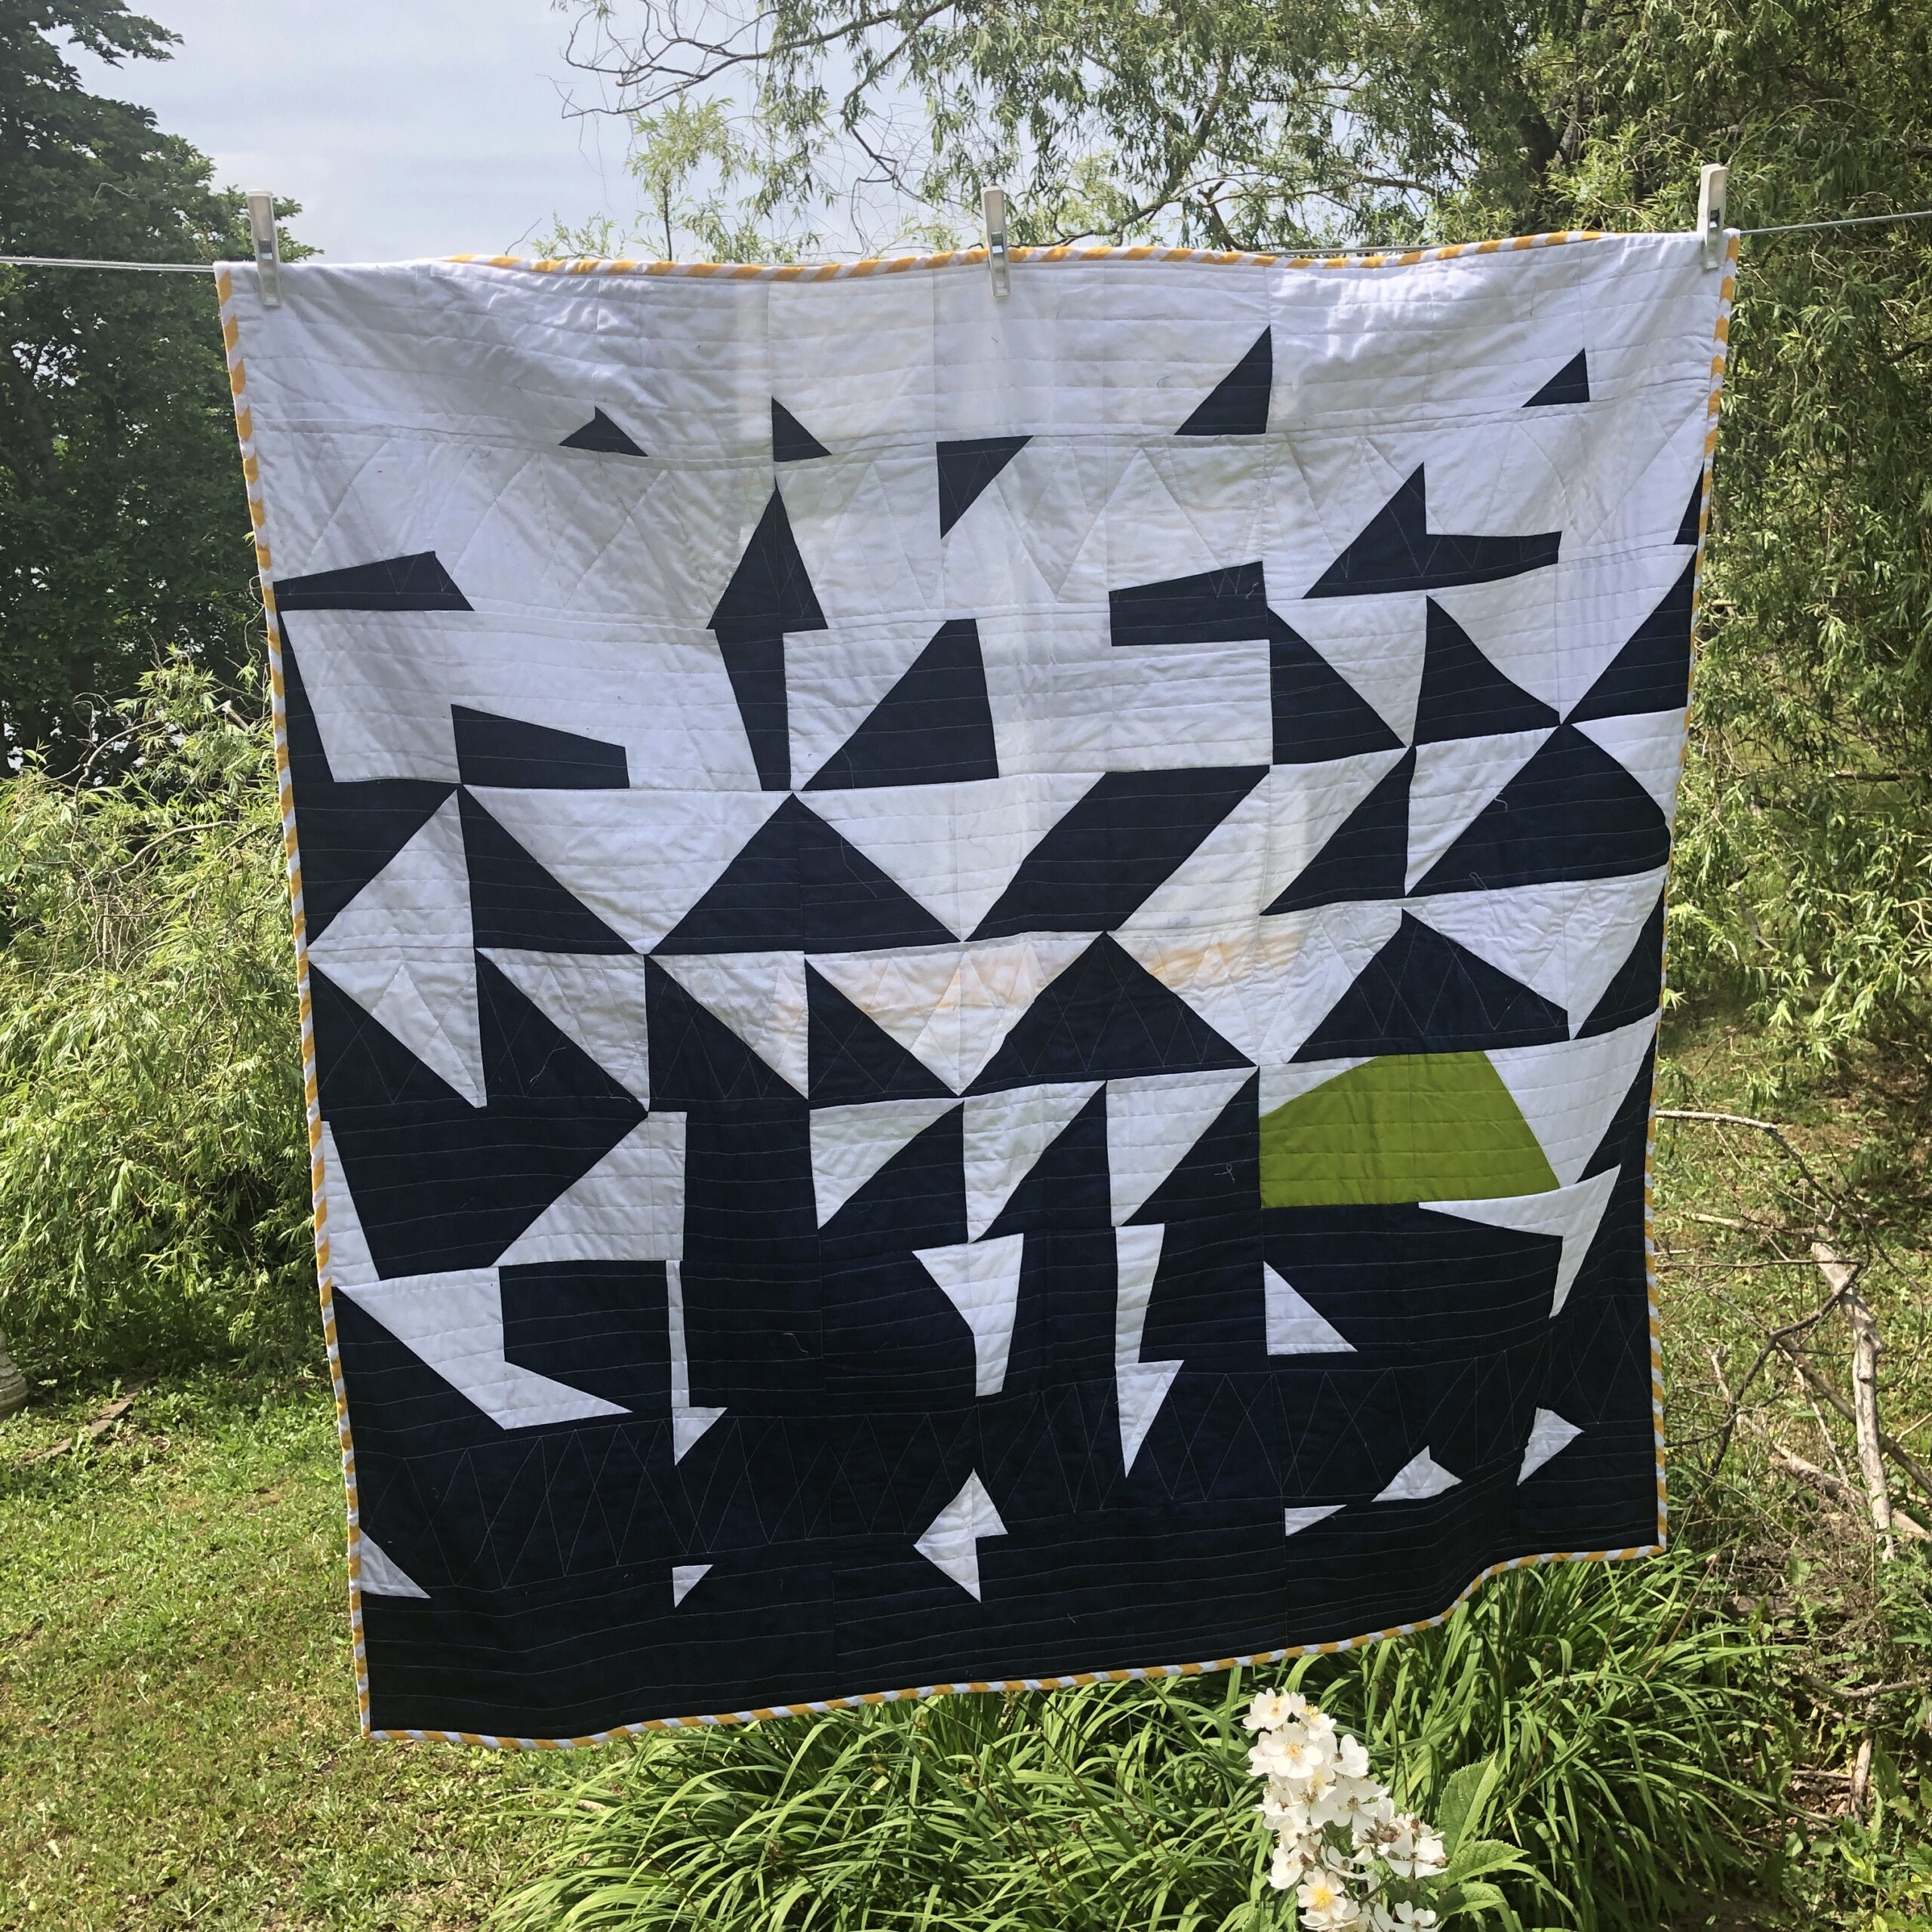 Shattered Quilt — covid quilt #2